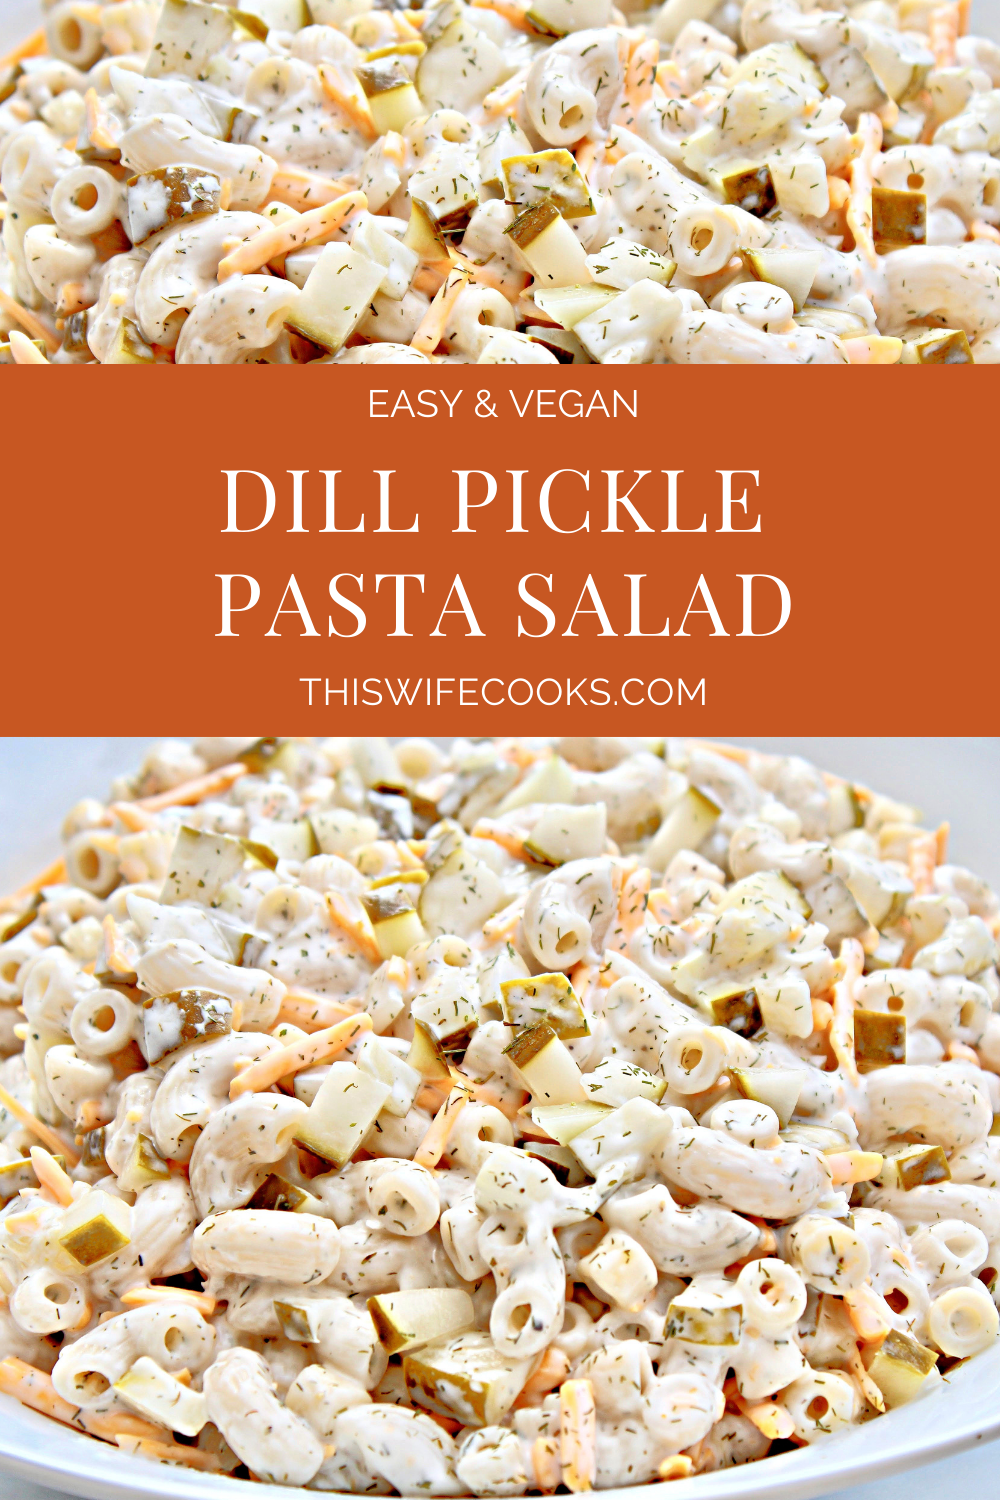 Dill Pickle Pasta Salad ~ A creamy and refreshingly tangy chilled pasta salad. Super easy to make ahead. Great for picnics and cookouts. via @thiswifecooks